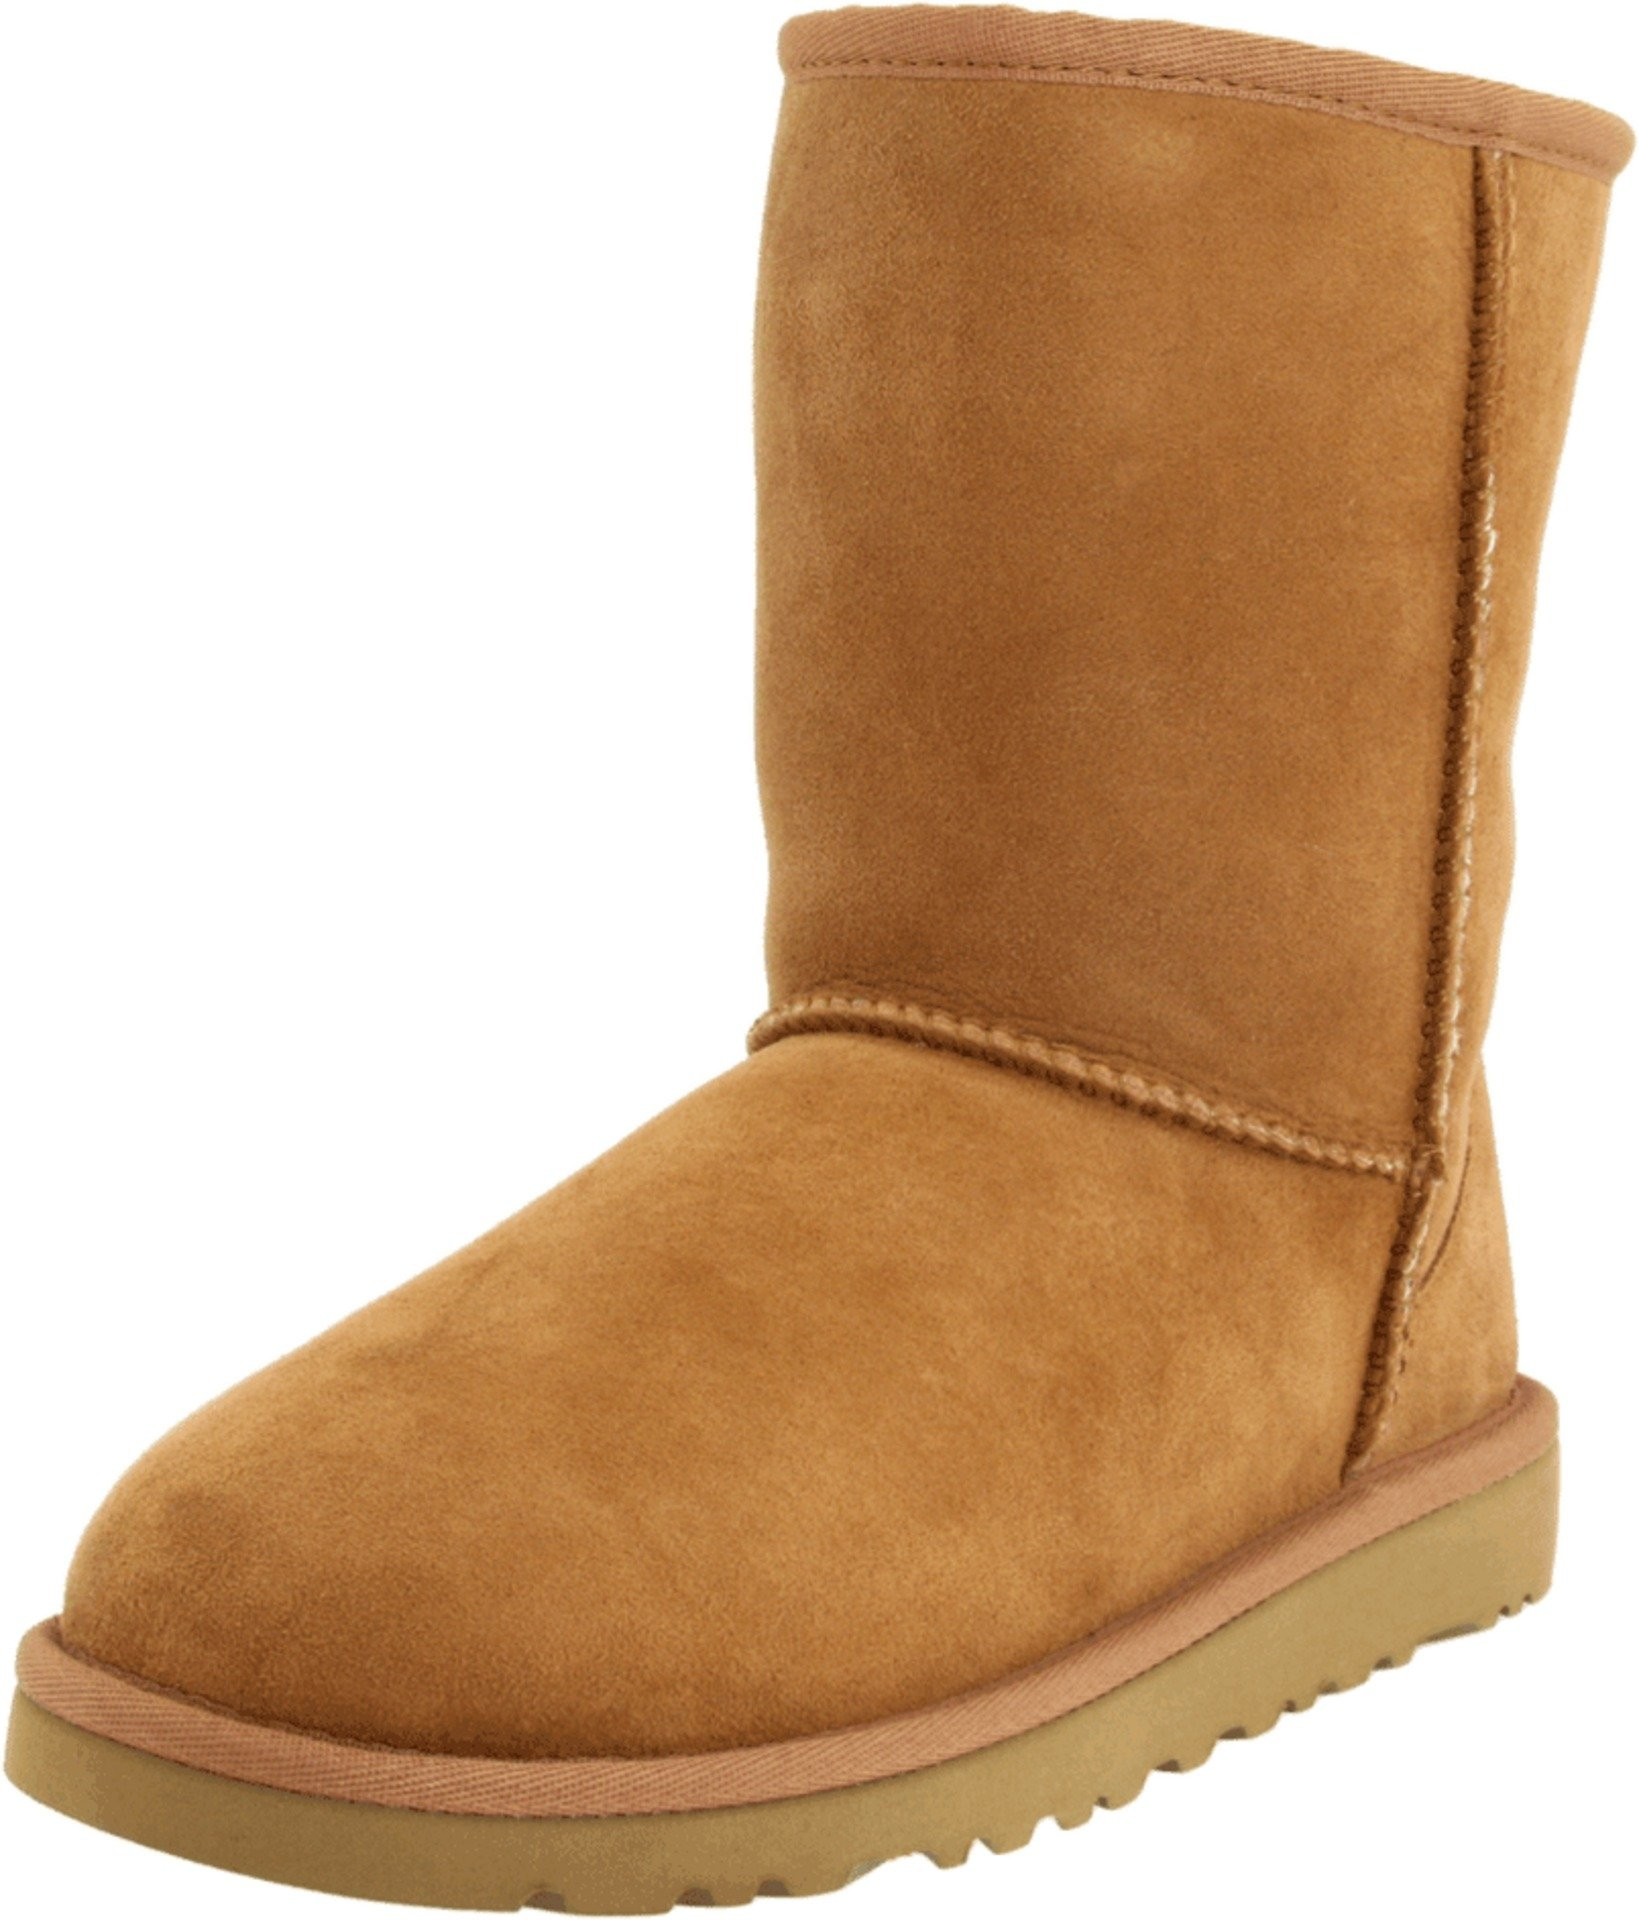 UGG Kids Unisex Classic (Big Kid) Chestnut Boot 6 Big Kid M by UGG